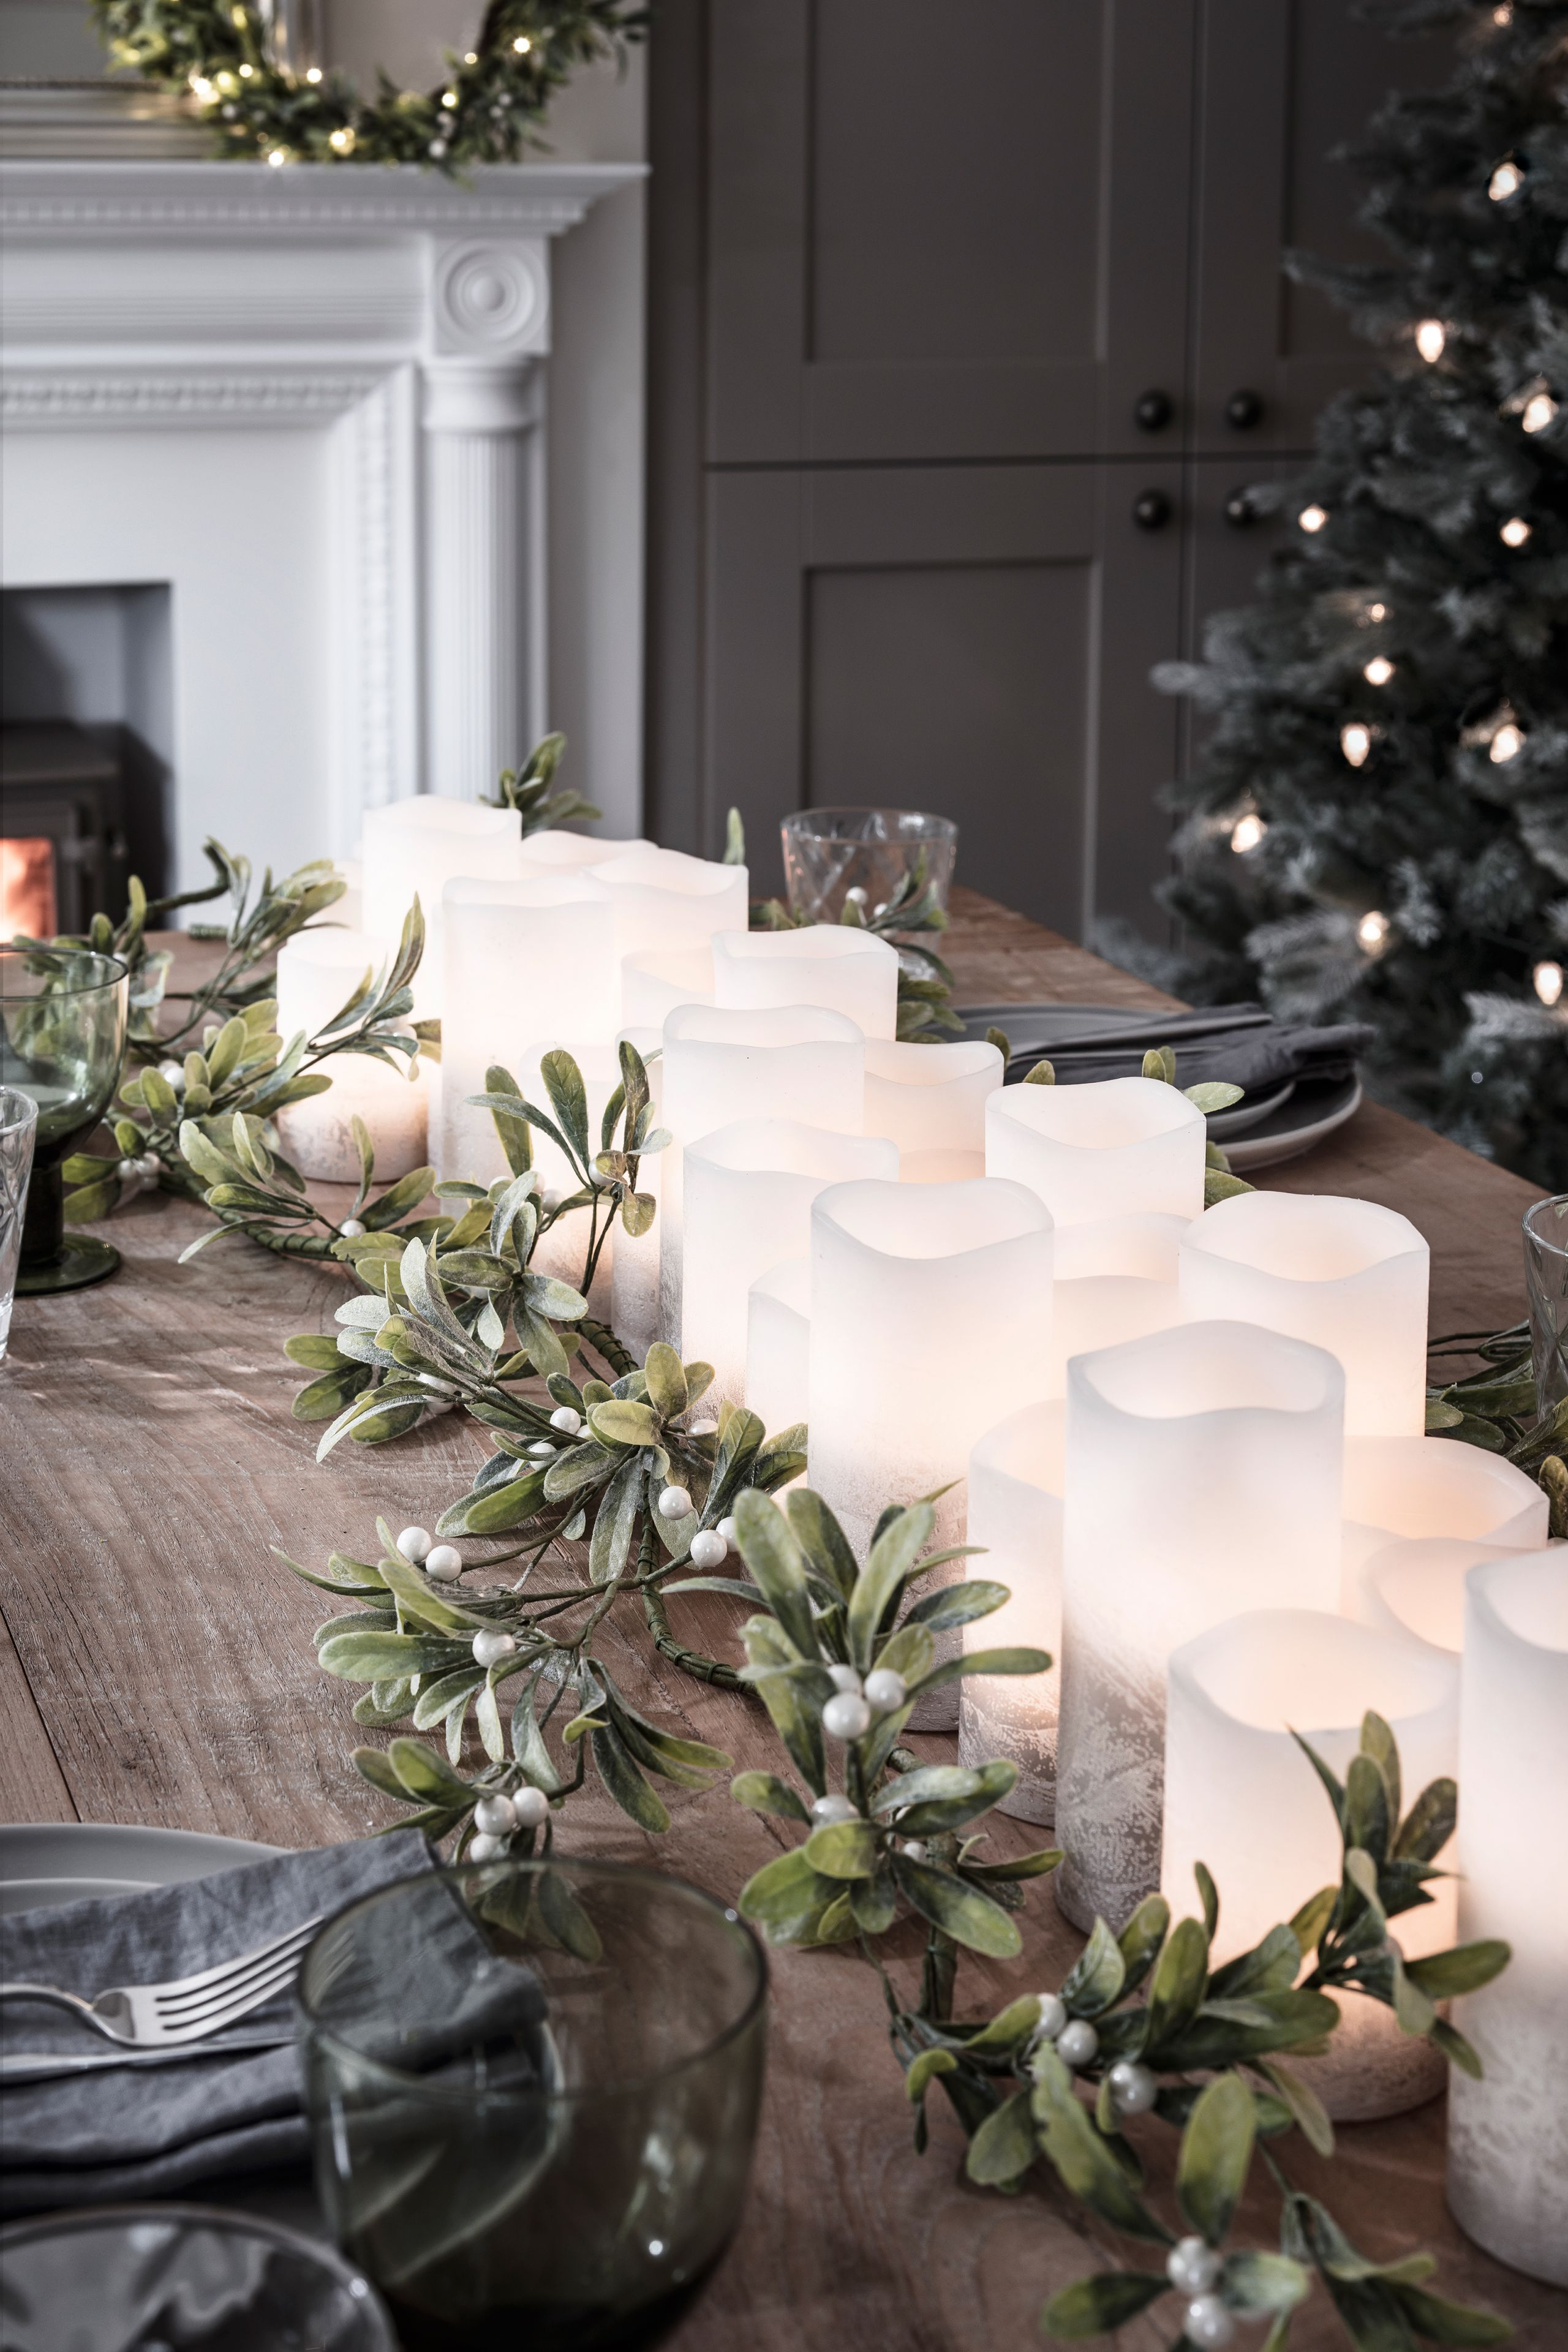 Best Christmas table decoration ideas (we promise)